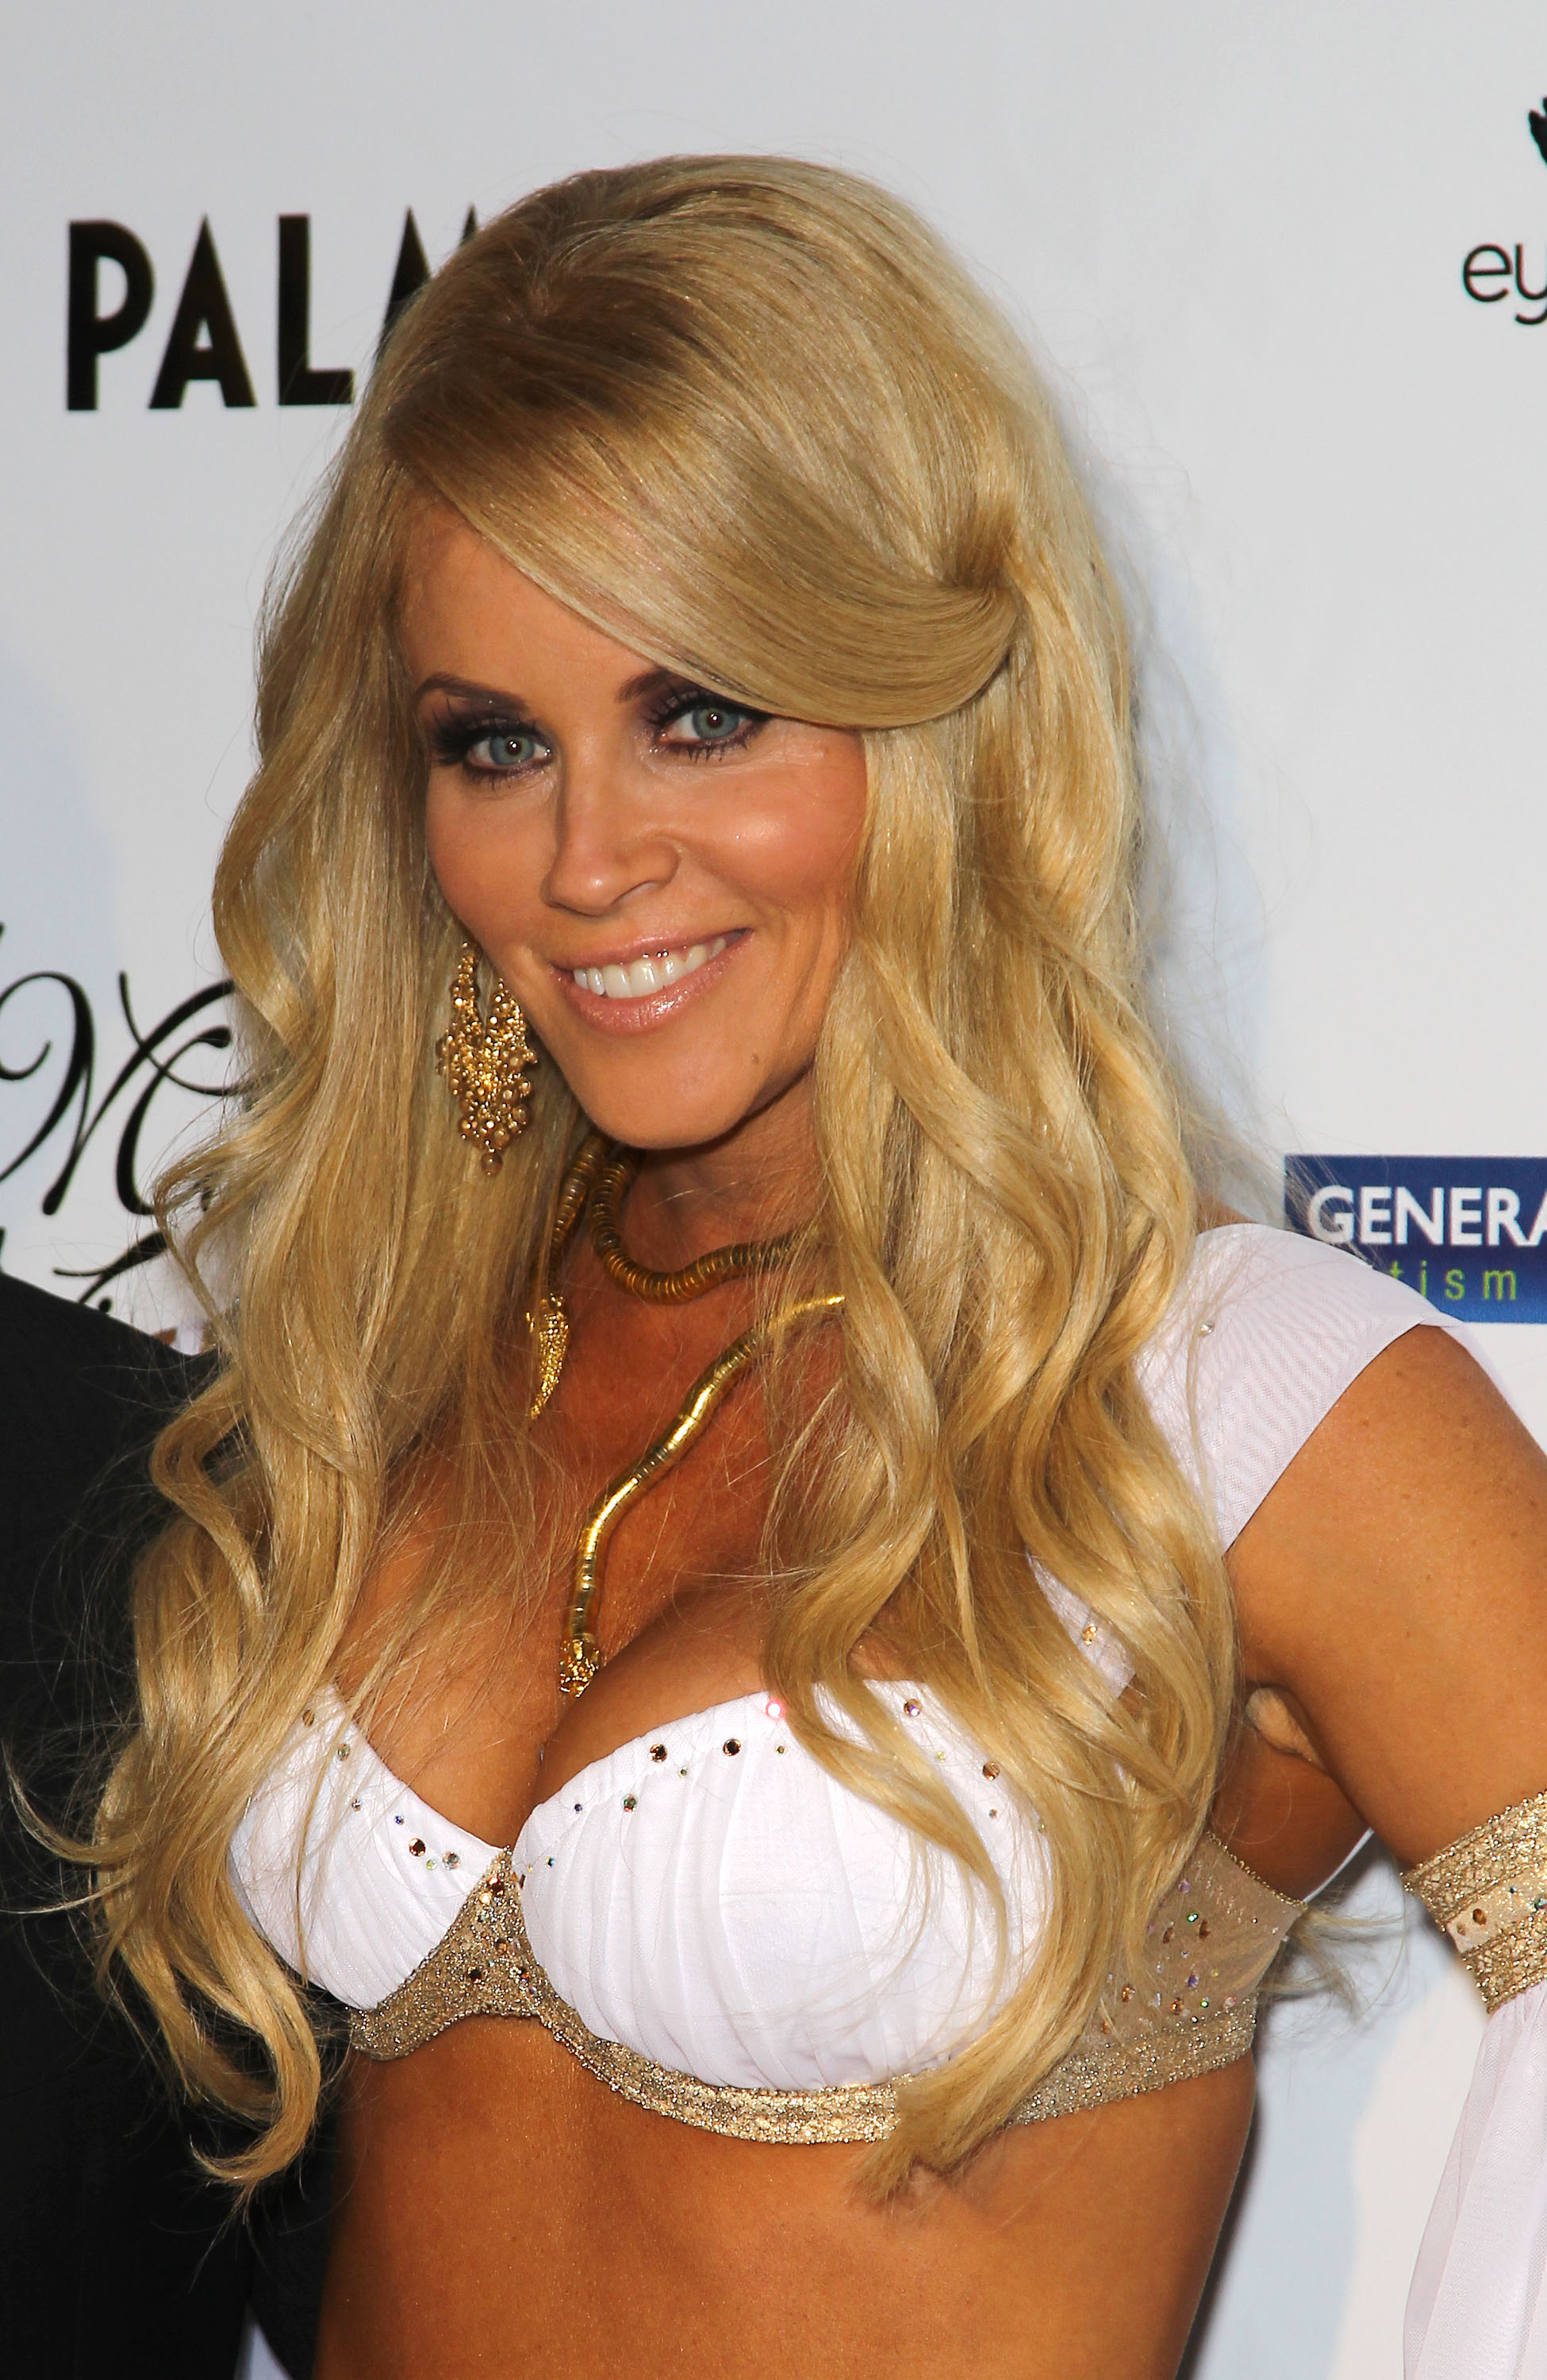 jenny-mccarthy-midsummer-nights-dream-party-in-las-vegas-03.jpg